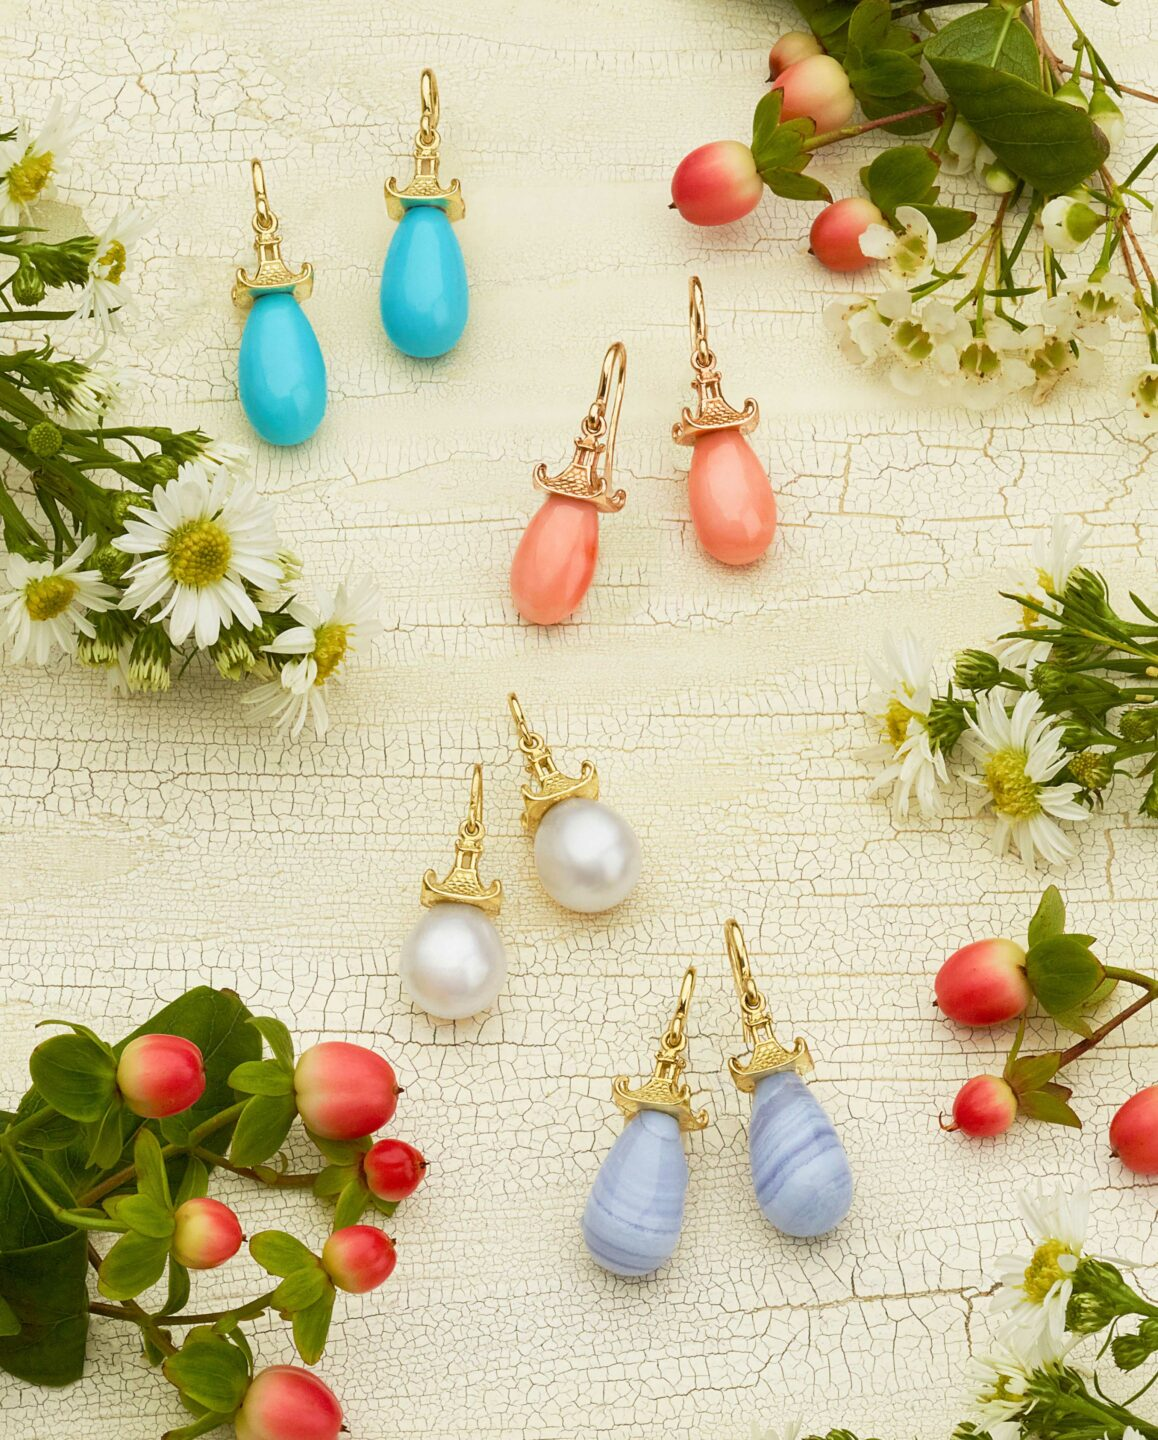 mish_products_earrings_Pagoda-PinkCoral-ER-Editorial-1_replace